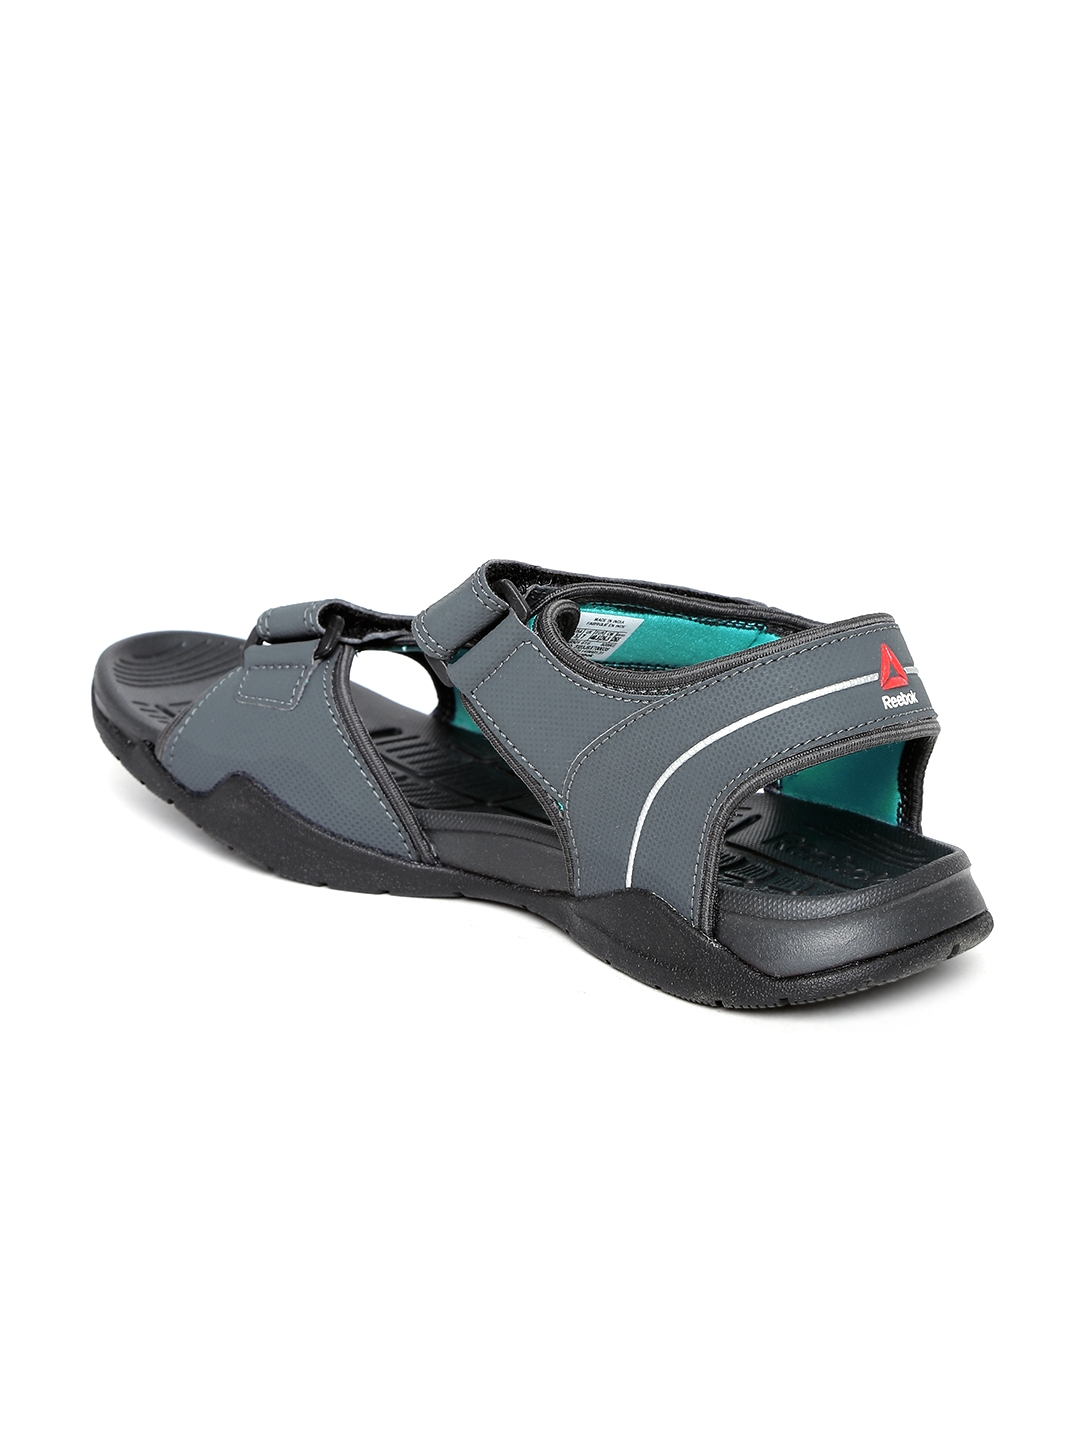 a5a950b0a6ba Buy Reebok Women Charcoal Grey Z Connect Sports Sandals - Sports ...